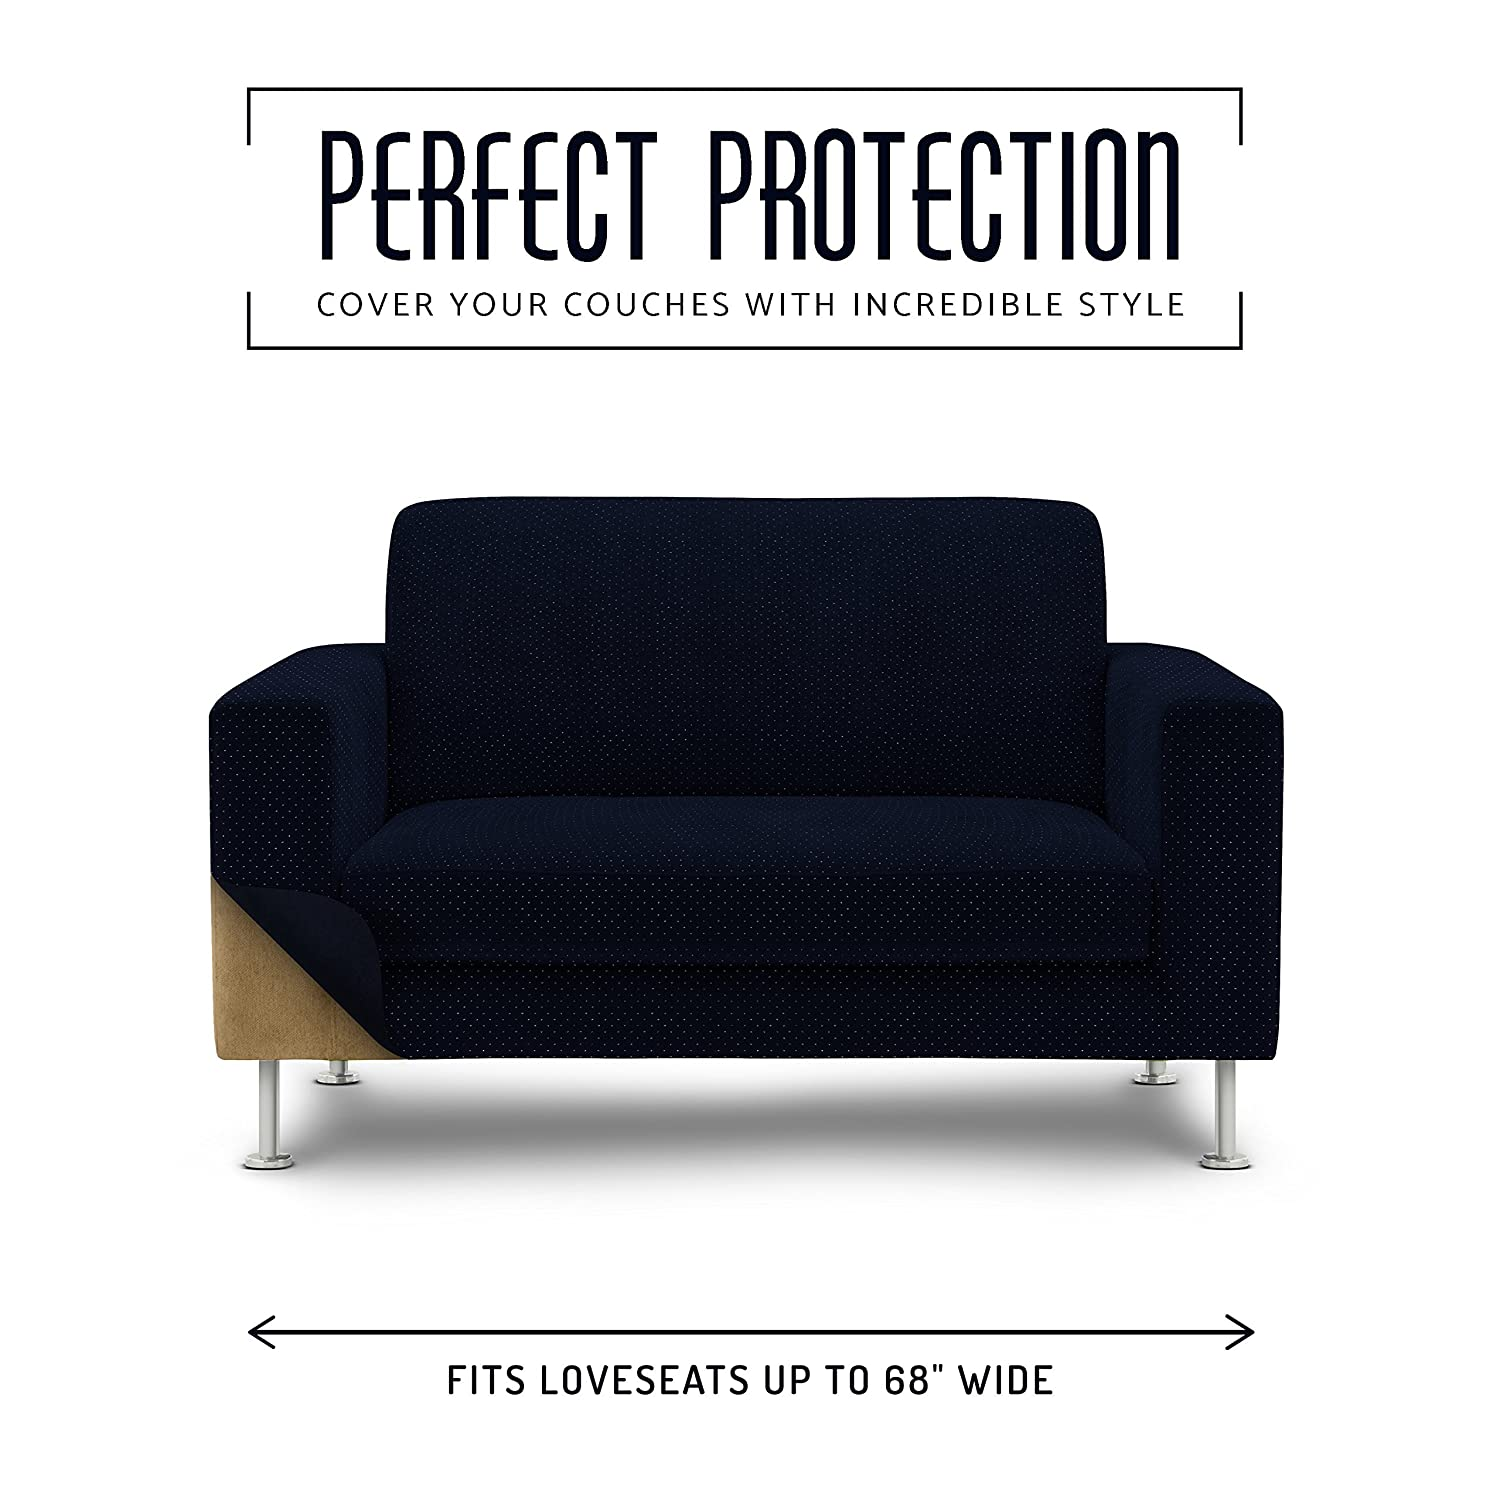 Brilliant Le Benton Loveseat Cover Decorative Metallic Dot Style 2 Seat Fitted Couch Cover Premium Pet Furniture Protector Navy Blue Silver Alphanode Cool Chair Designs And Ideas Alphanodeonline